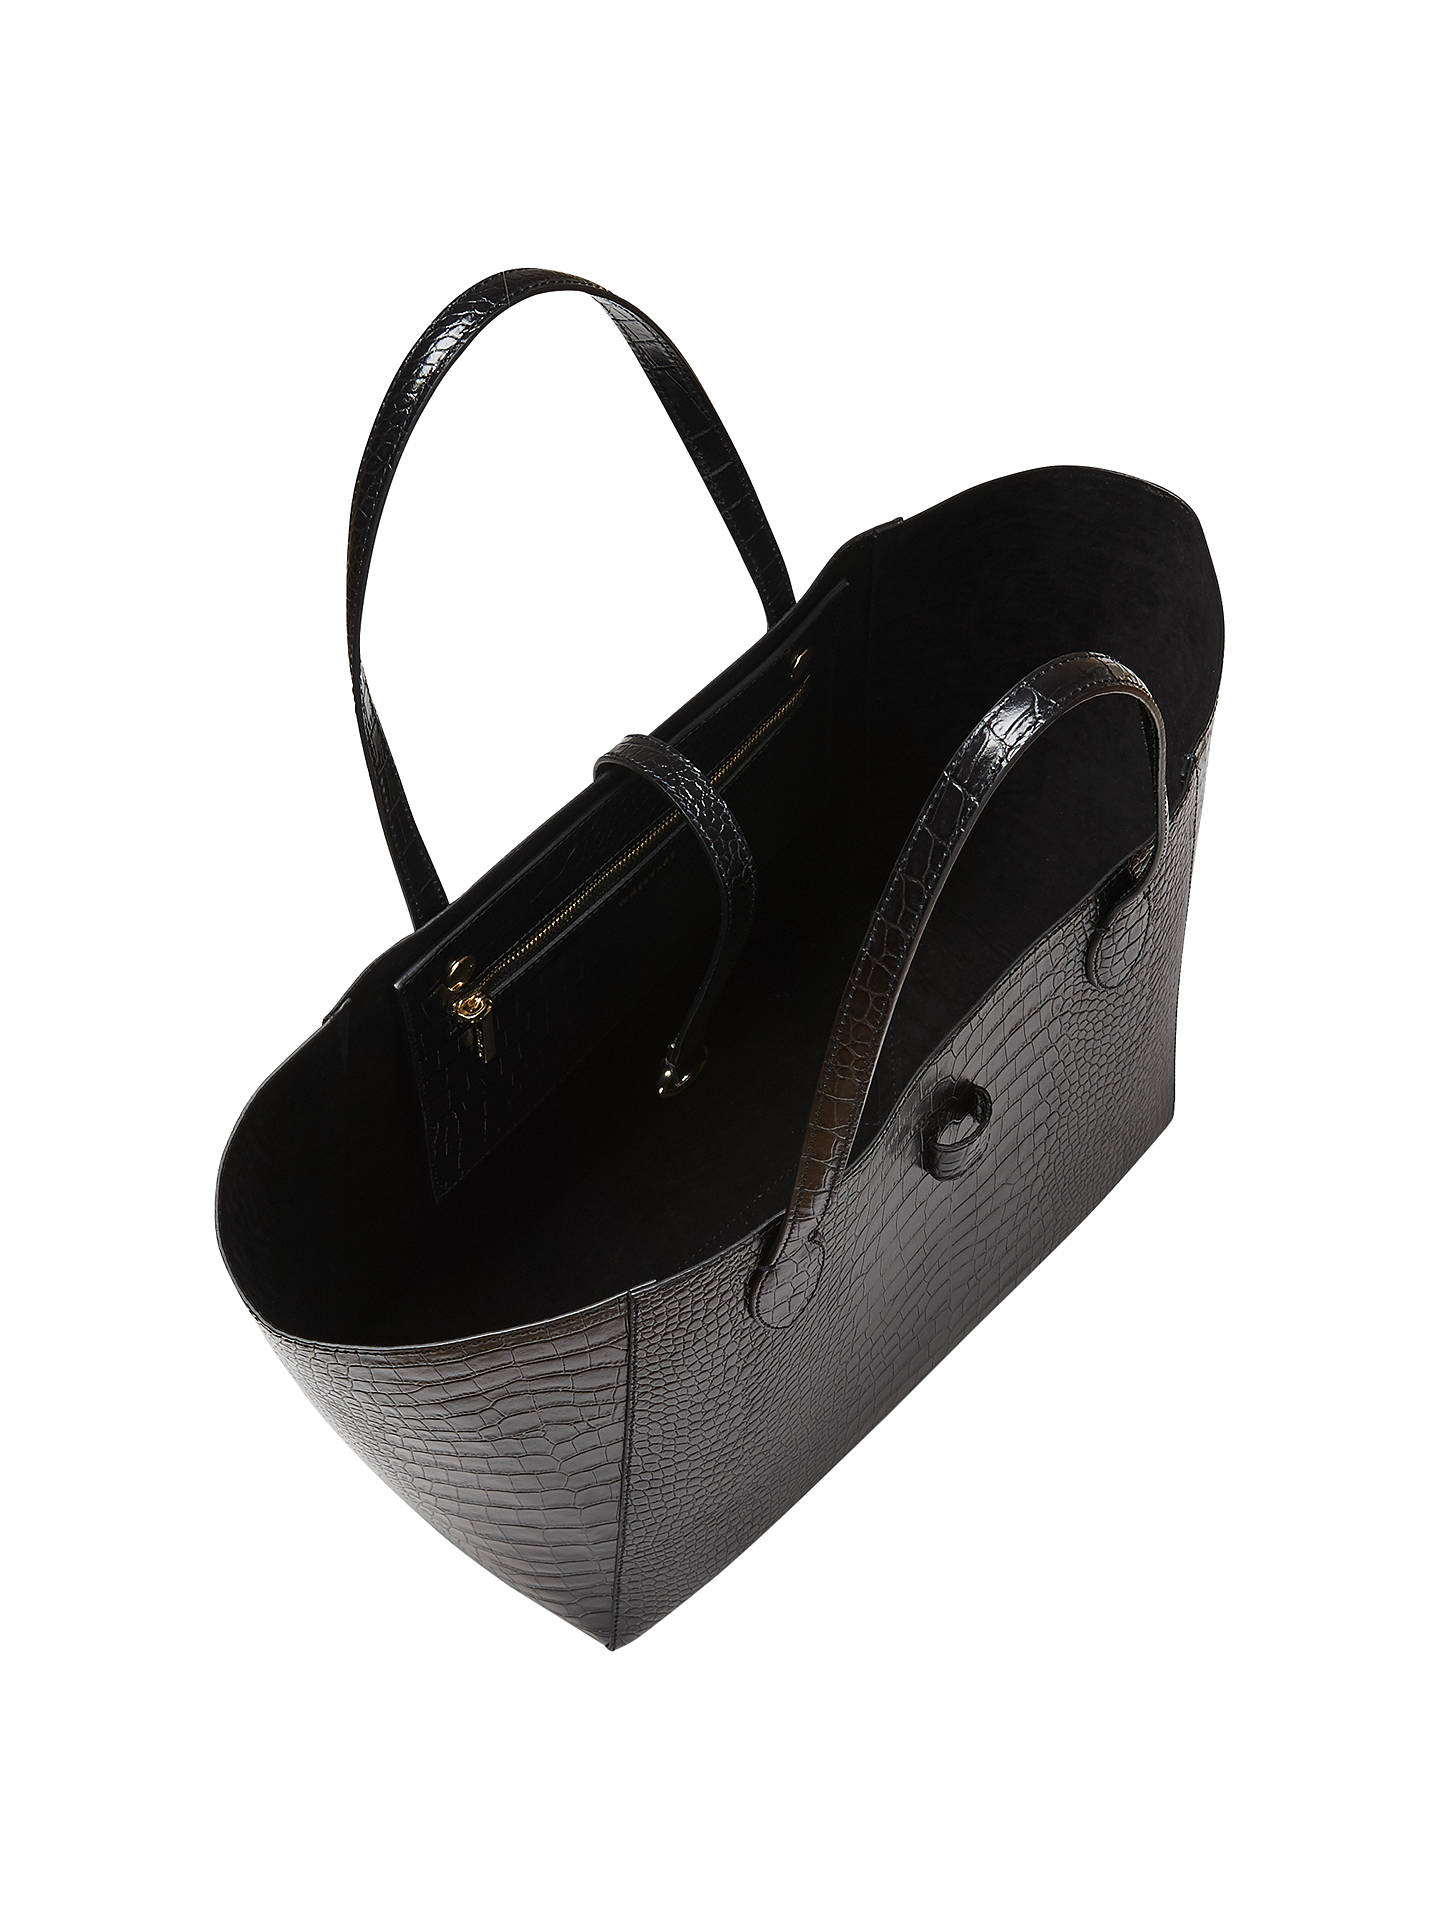 BuyWhistles Shaftesbury Croc Leather Tote Bag, Black Online at johnlewis.com